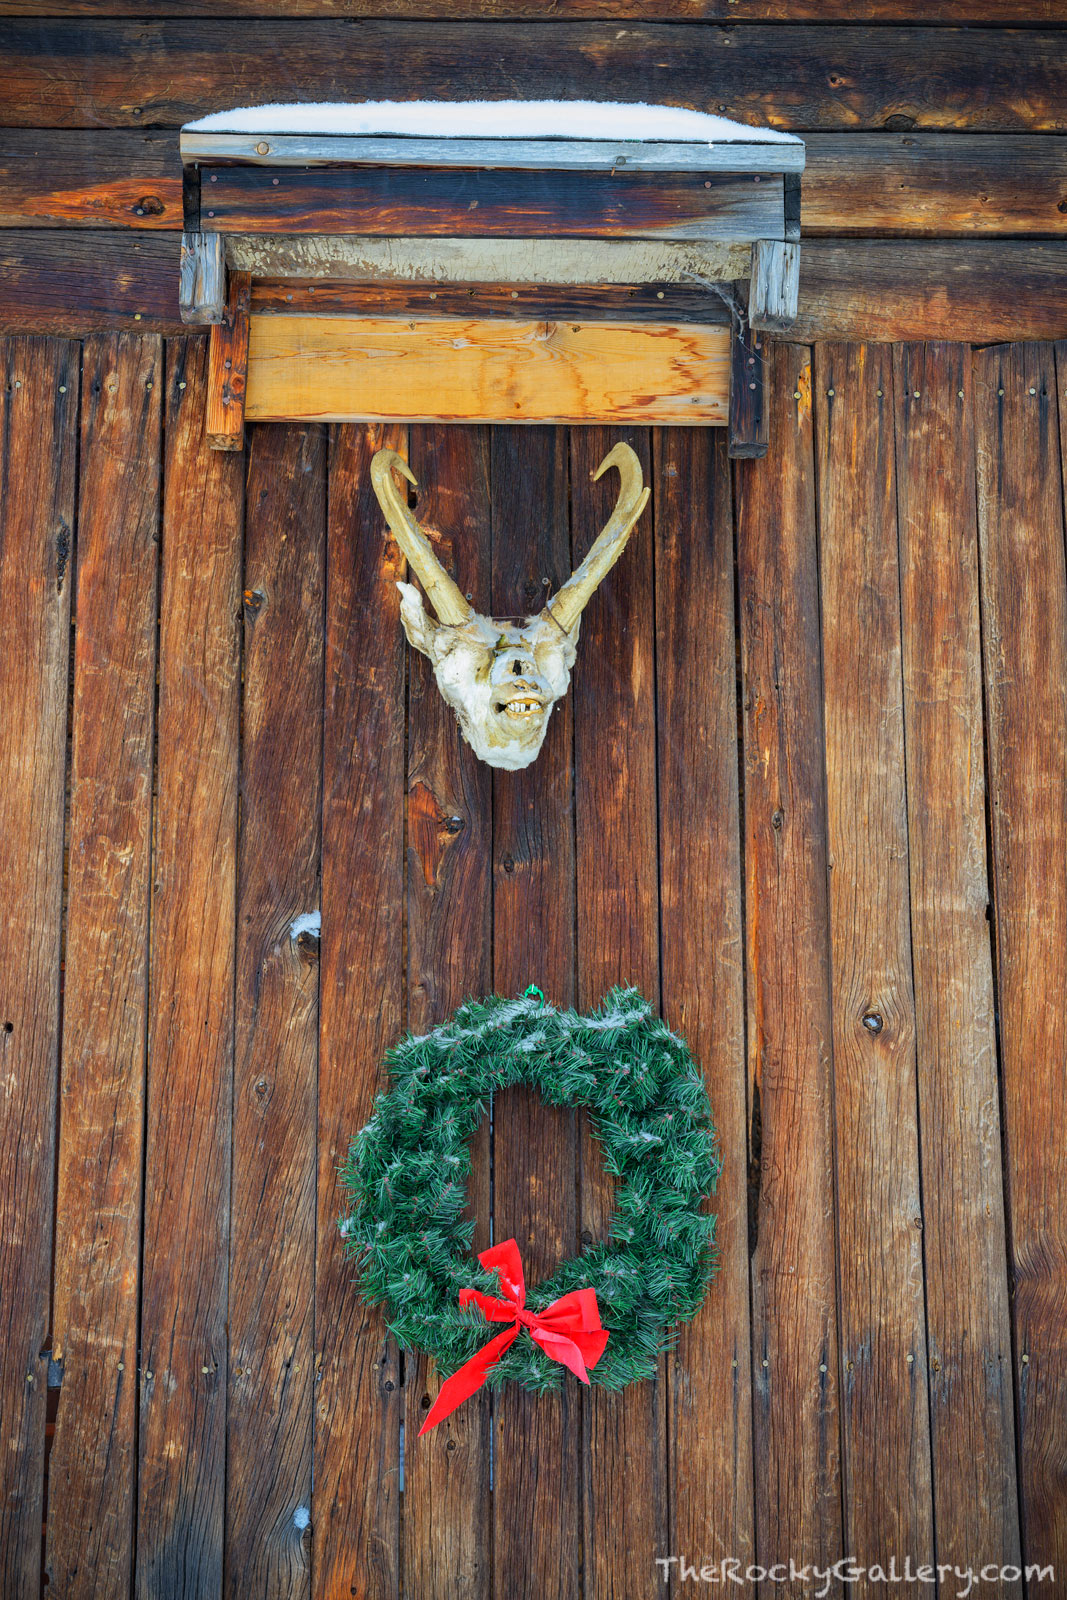 Grand Lake,Smith Eslick Cottage,Christmas,Proghorn,January,Colorado,Rocky Mountain National Park,Motel,RMNP,Grand County,Historical Society,hand of man,skull , photo